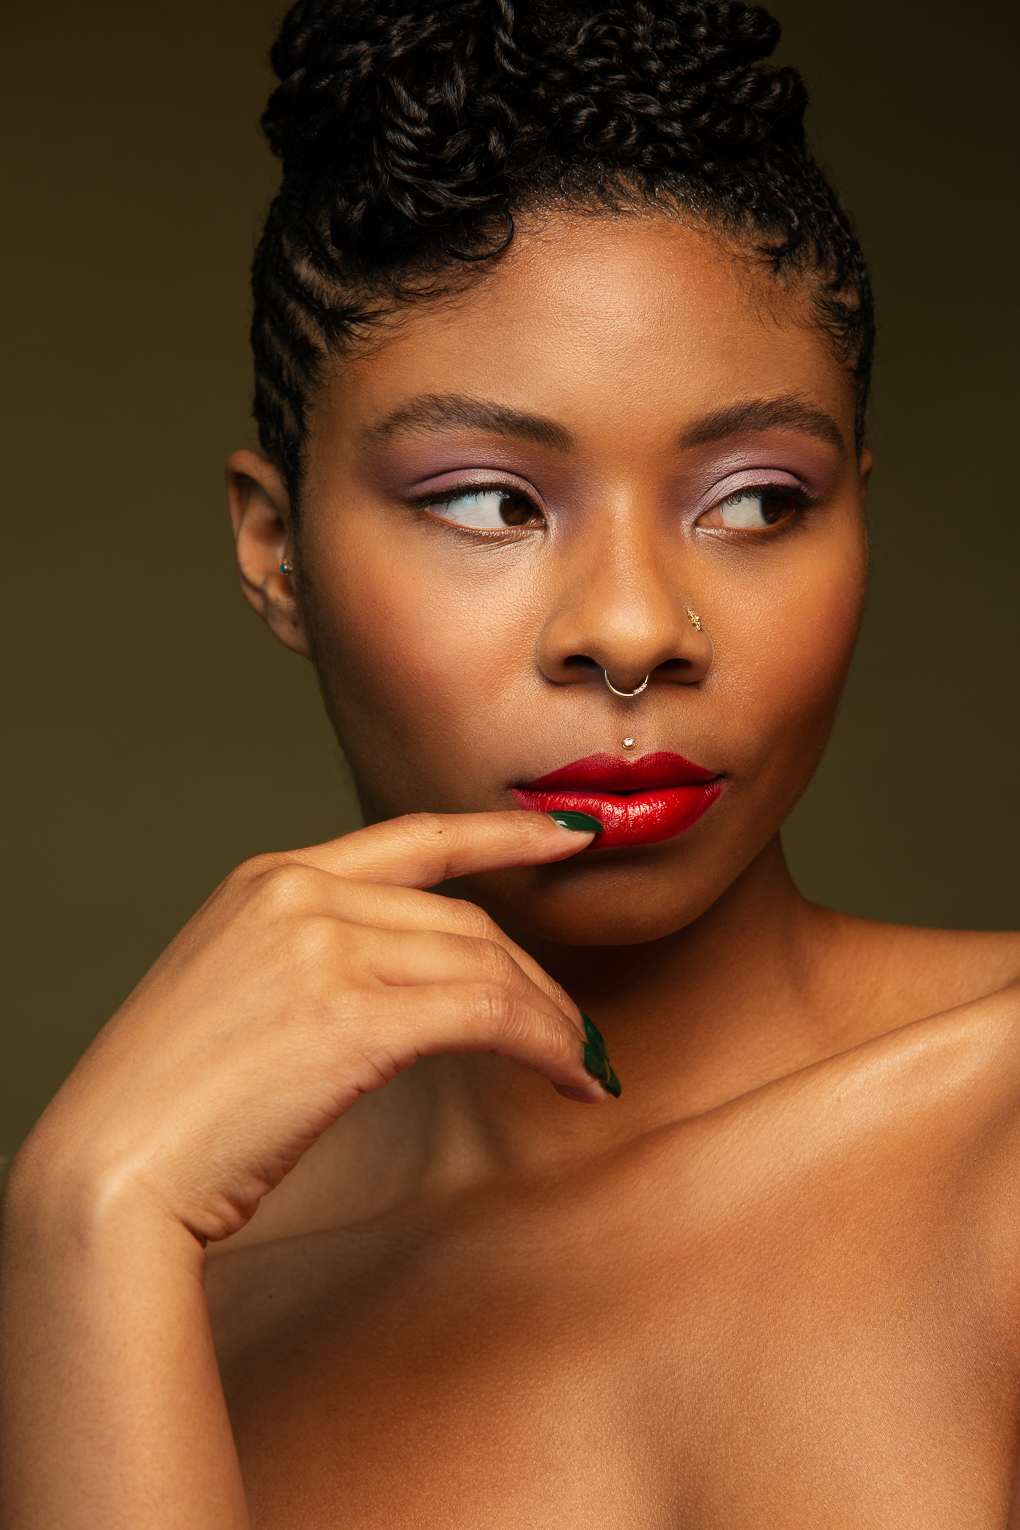 Confident portrait of black woman with red lips by San Francisco Bay Area Photographer Ella Sophie